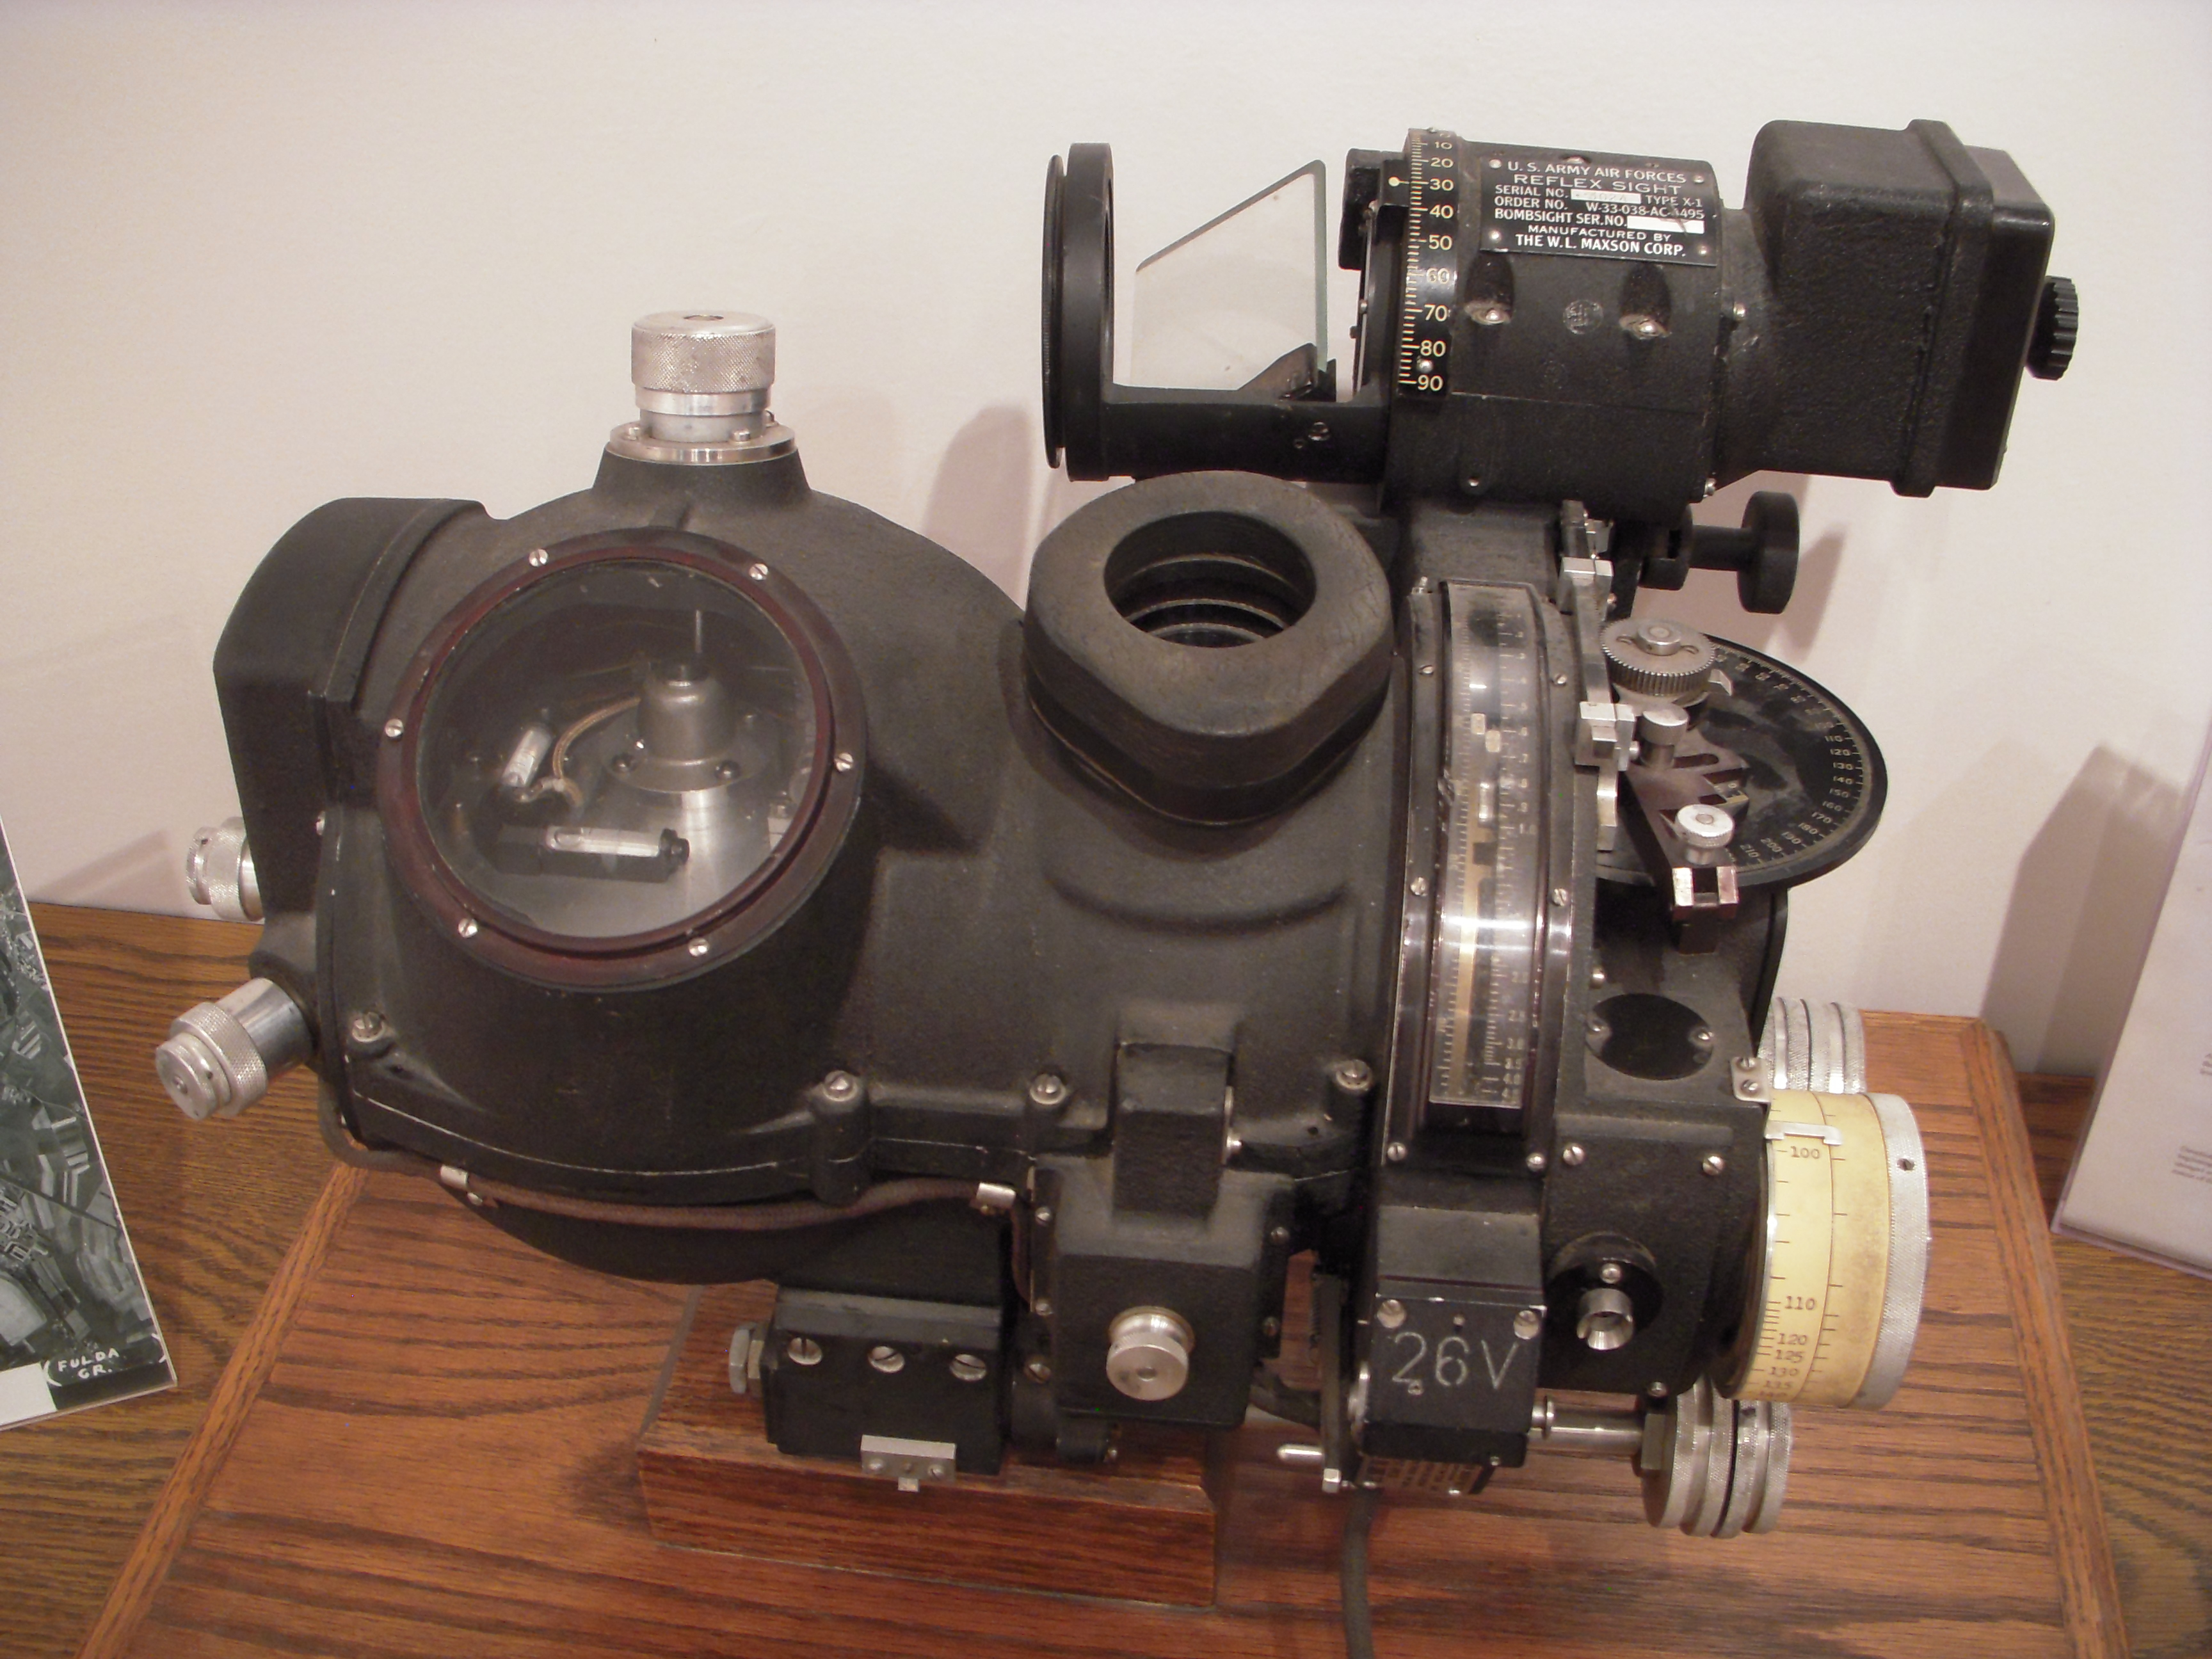 the norden bombsight Marilyn walton sent me some good links dealing with the famous norden  bombsight, which legend has it could drop a bomb into a pickle barrel.